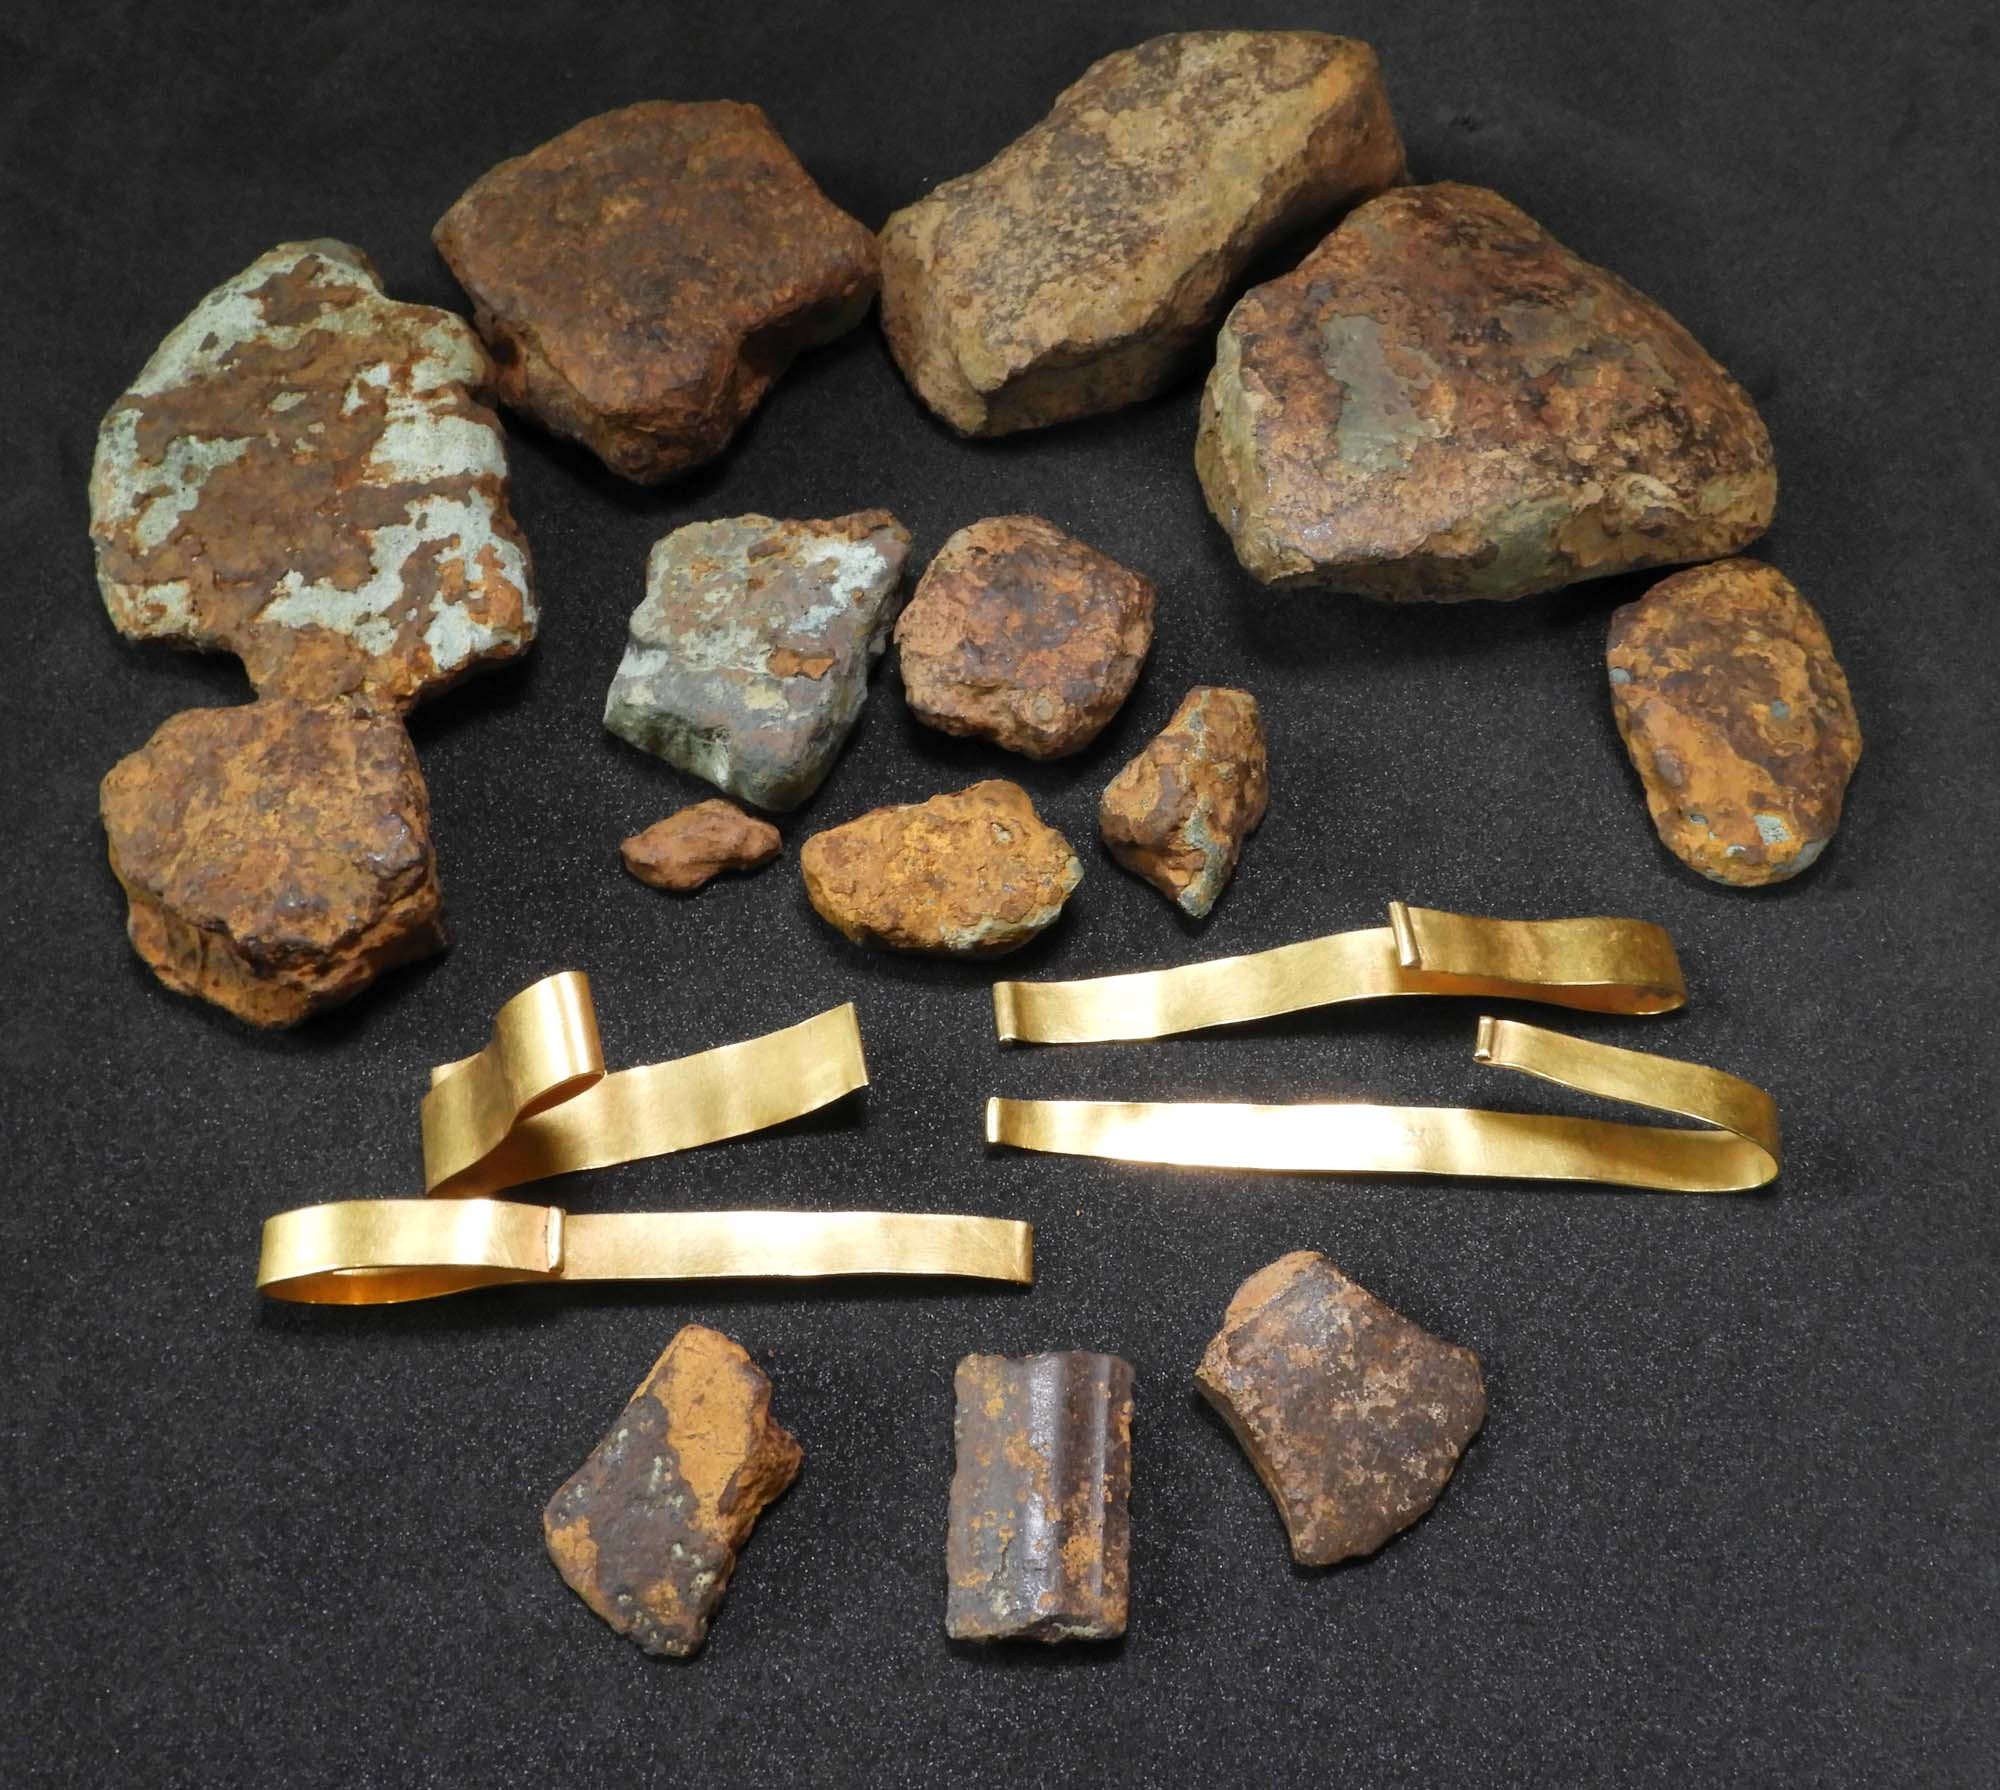 a photo of a grouping of gold and bronze objects